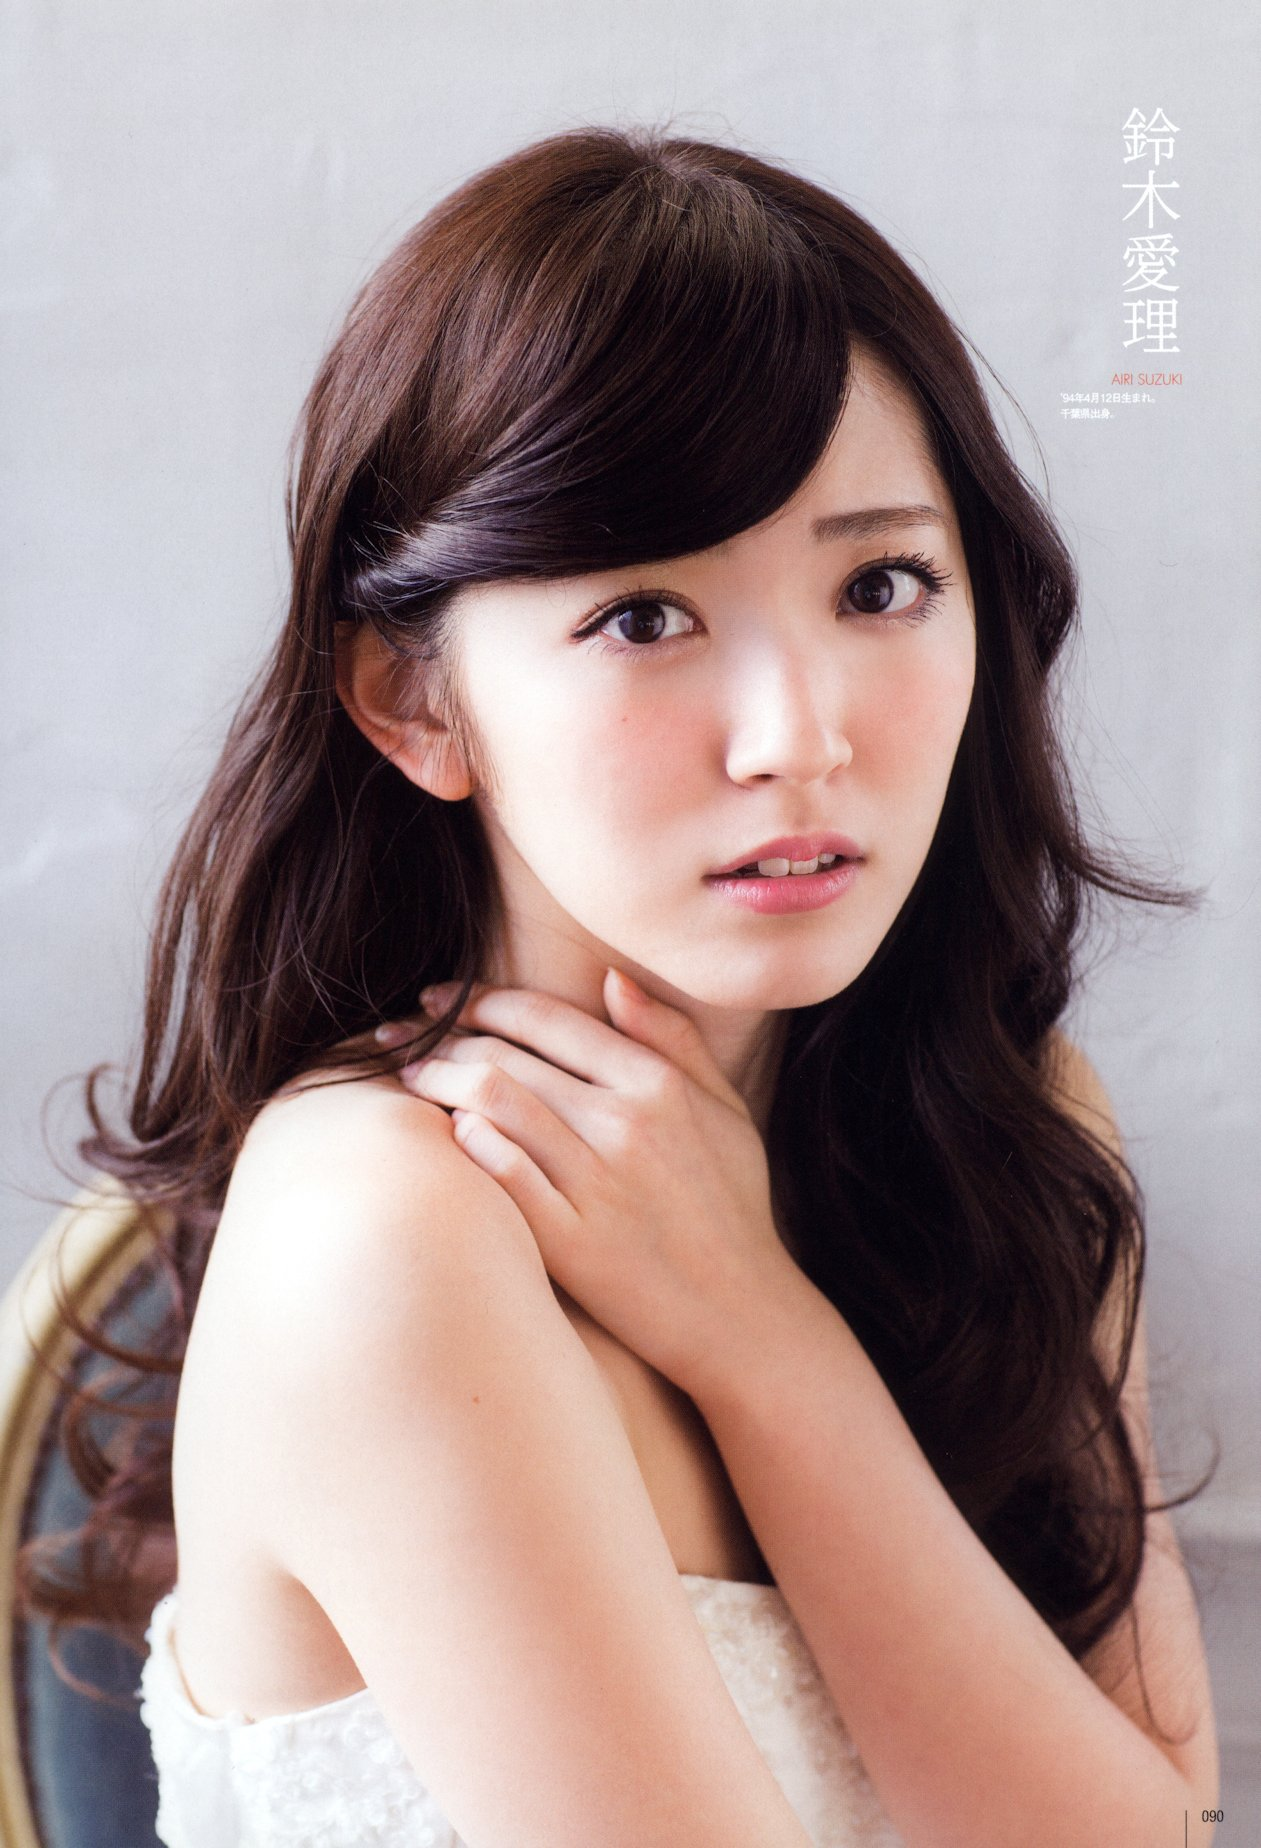 Airi Suzuki net worth